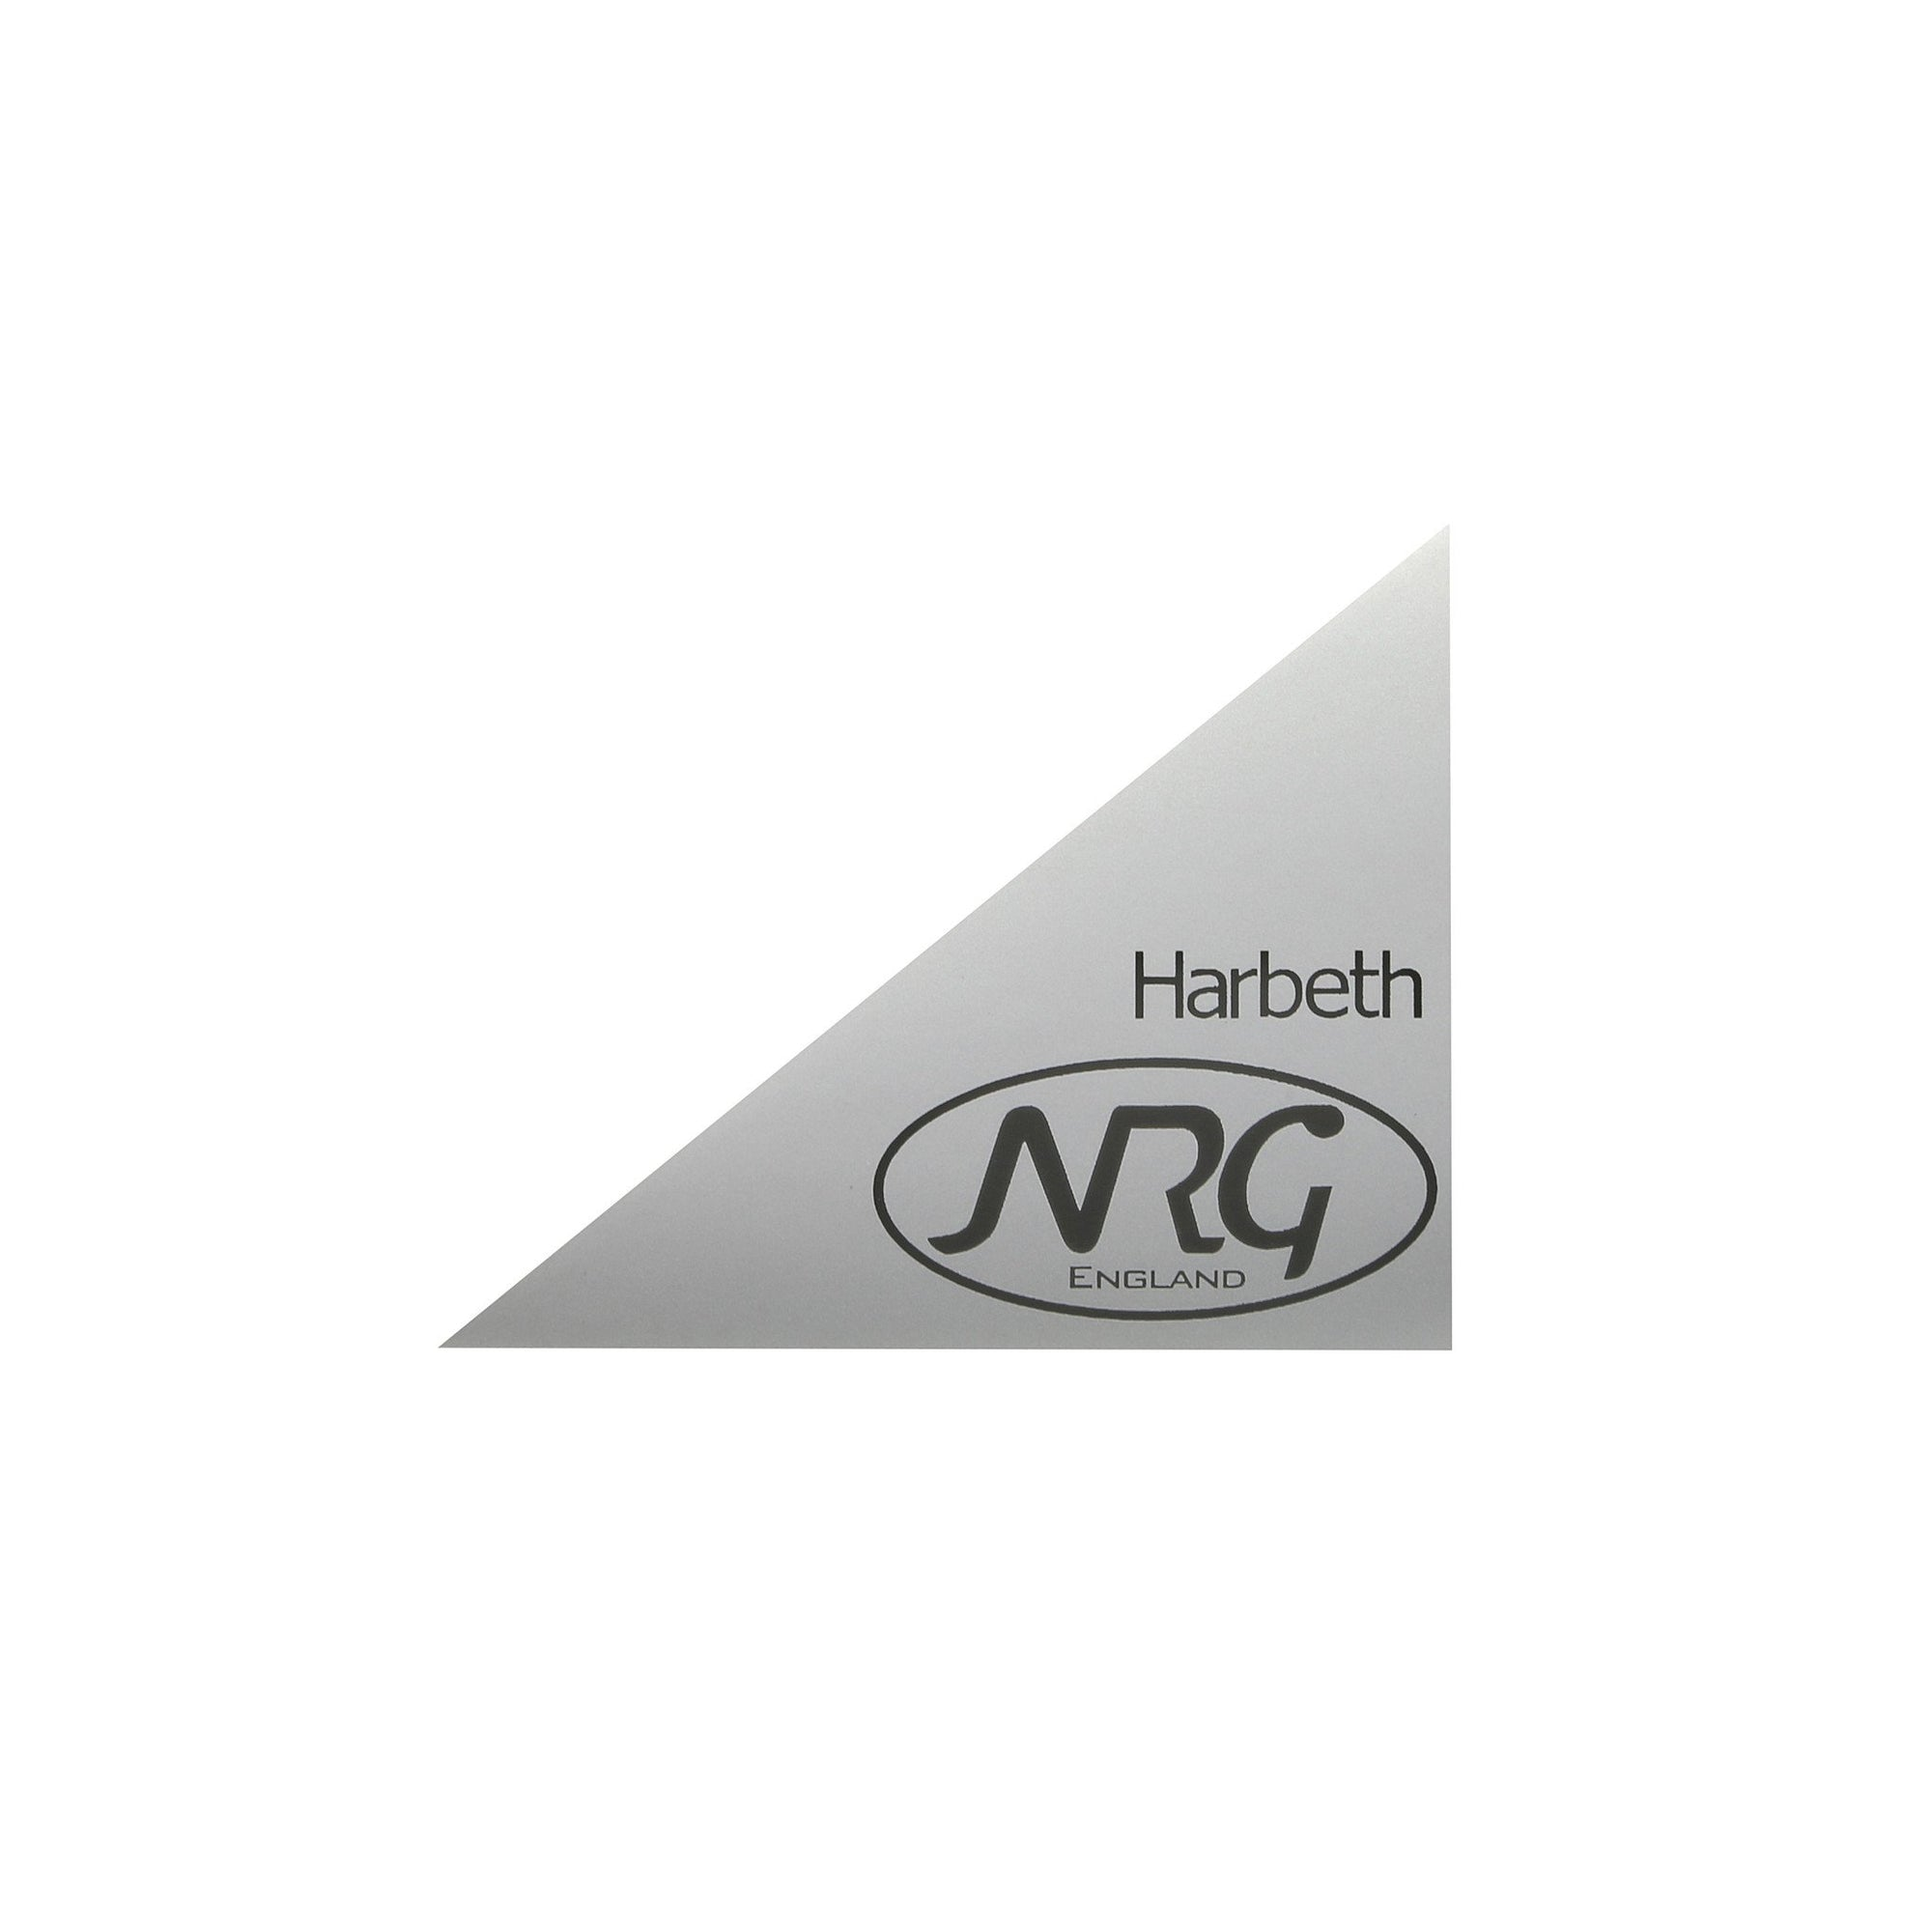 Harbeth NRG Speaker Logo Sticker badges GENUINE - Willys-Hifi Ltd